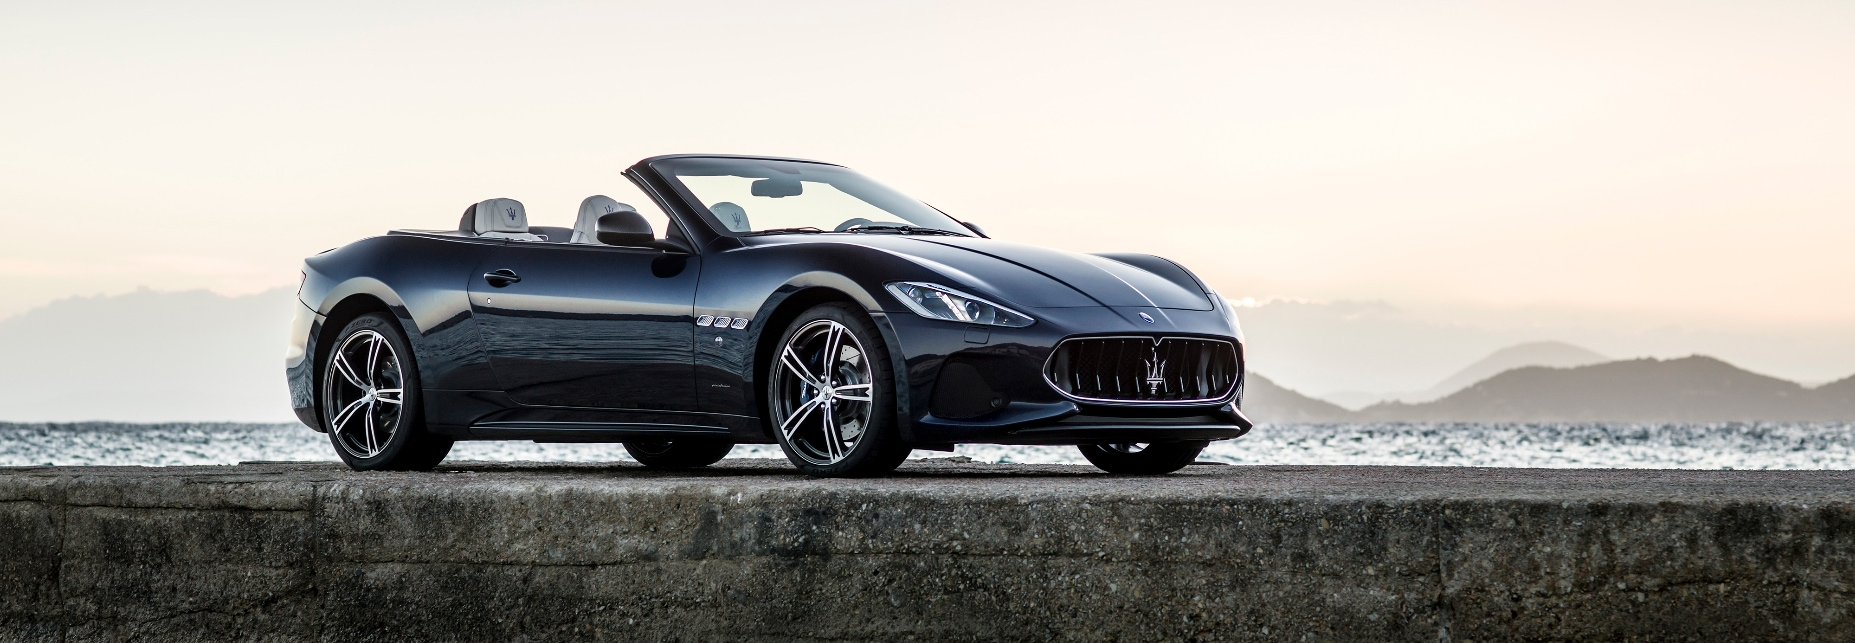 Used Maserati Granturismo Boston